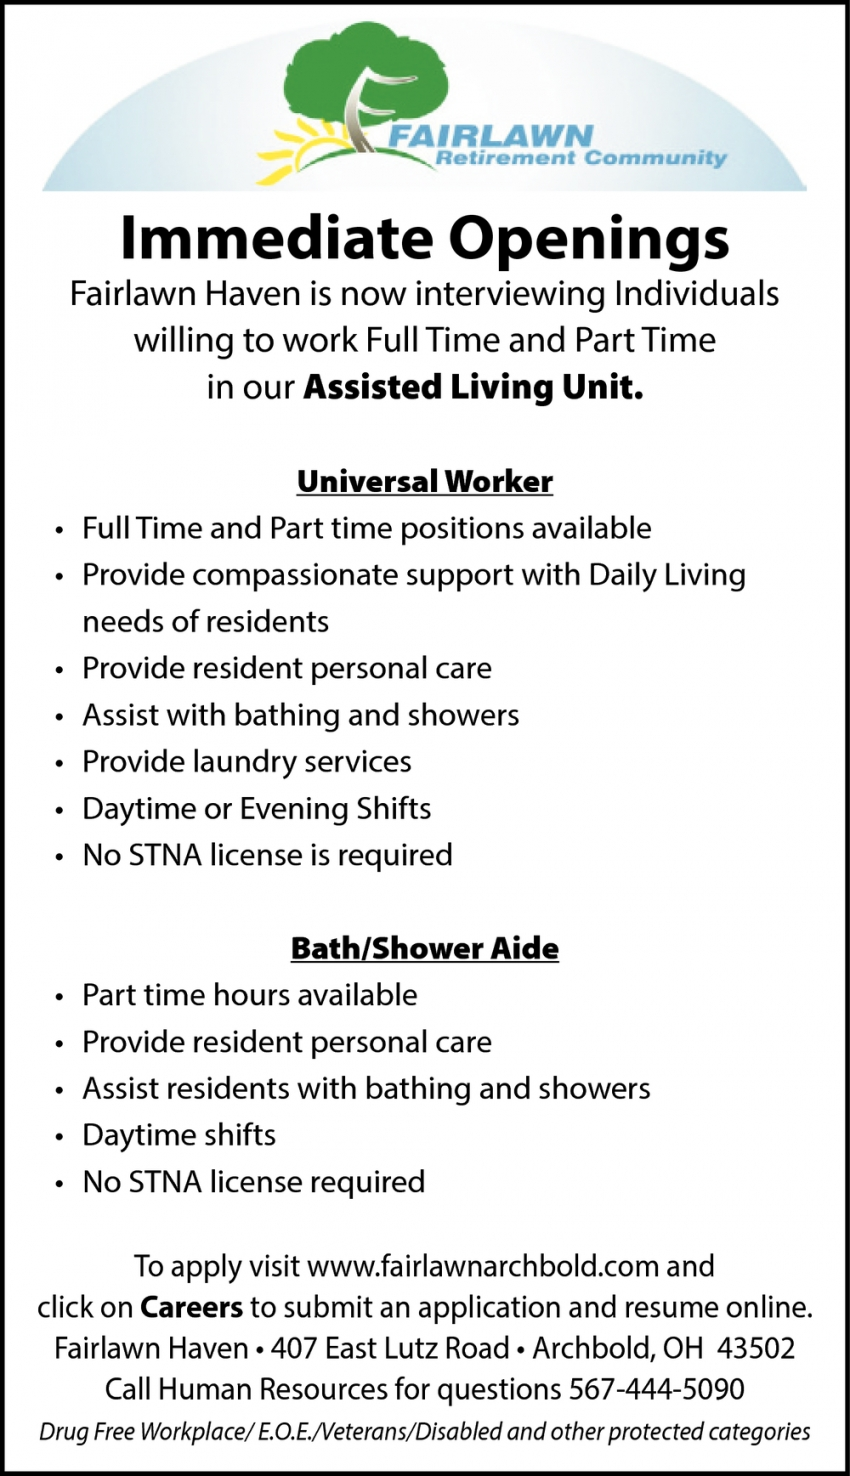 Universal Worker and Bath/Shower Aide